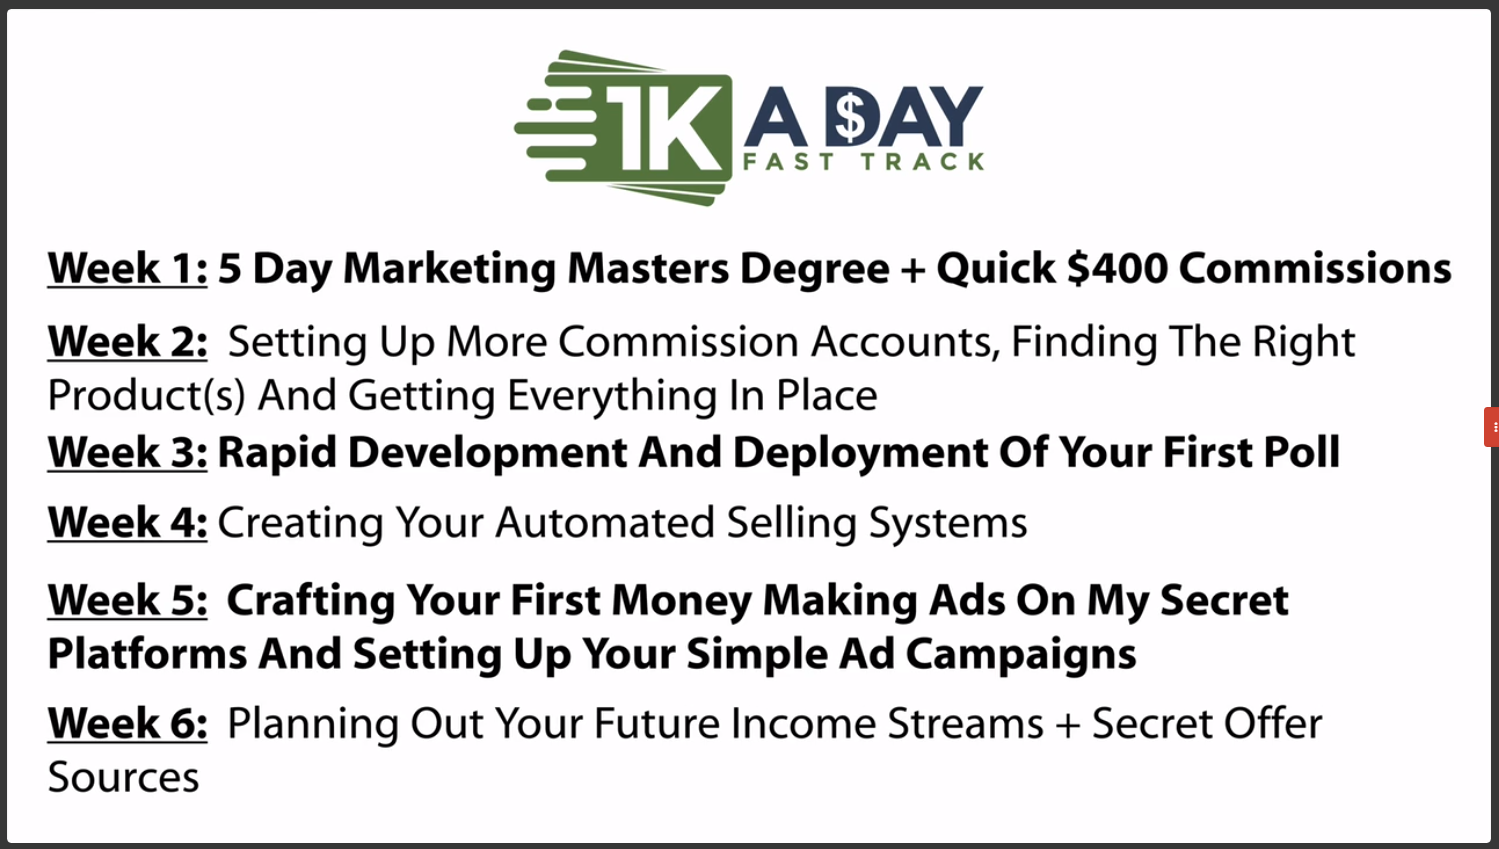 Training Program 1k A Day Fast Track Deal March